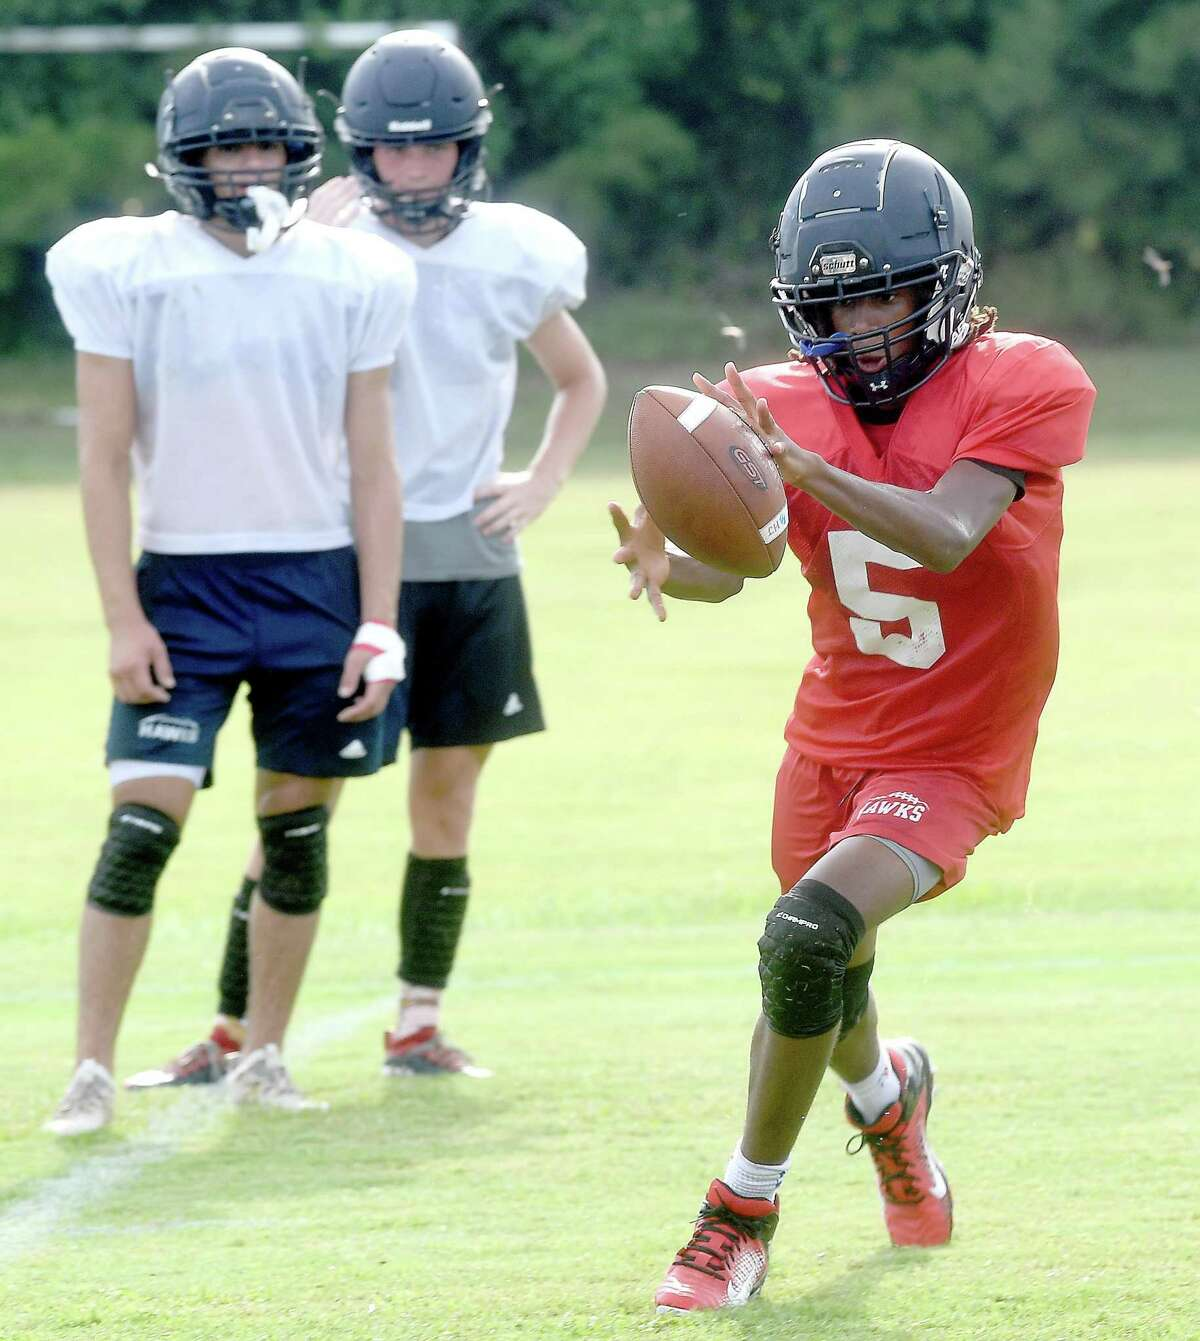 Hardin-Jefferson practices as they prepare for the 2021 season. Photo made Tuesday, August 10, 2021 Kim Brent/The Enterprise